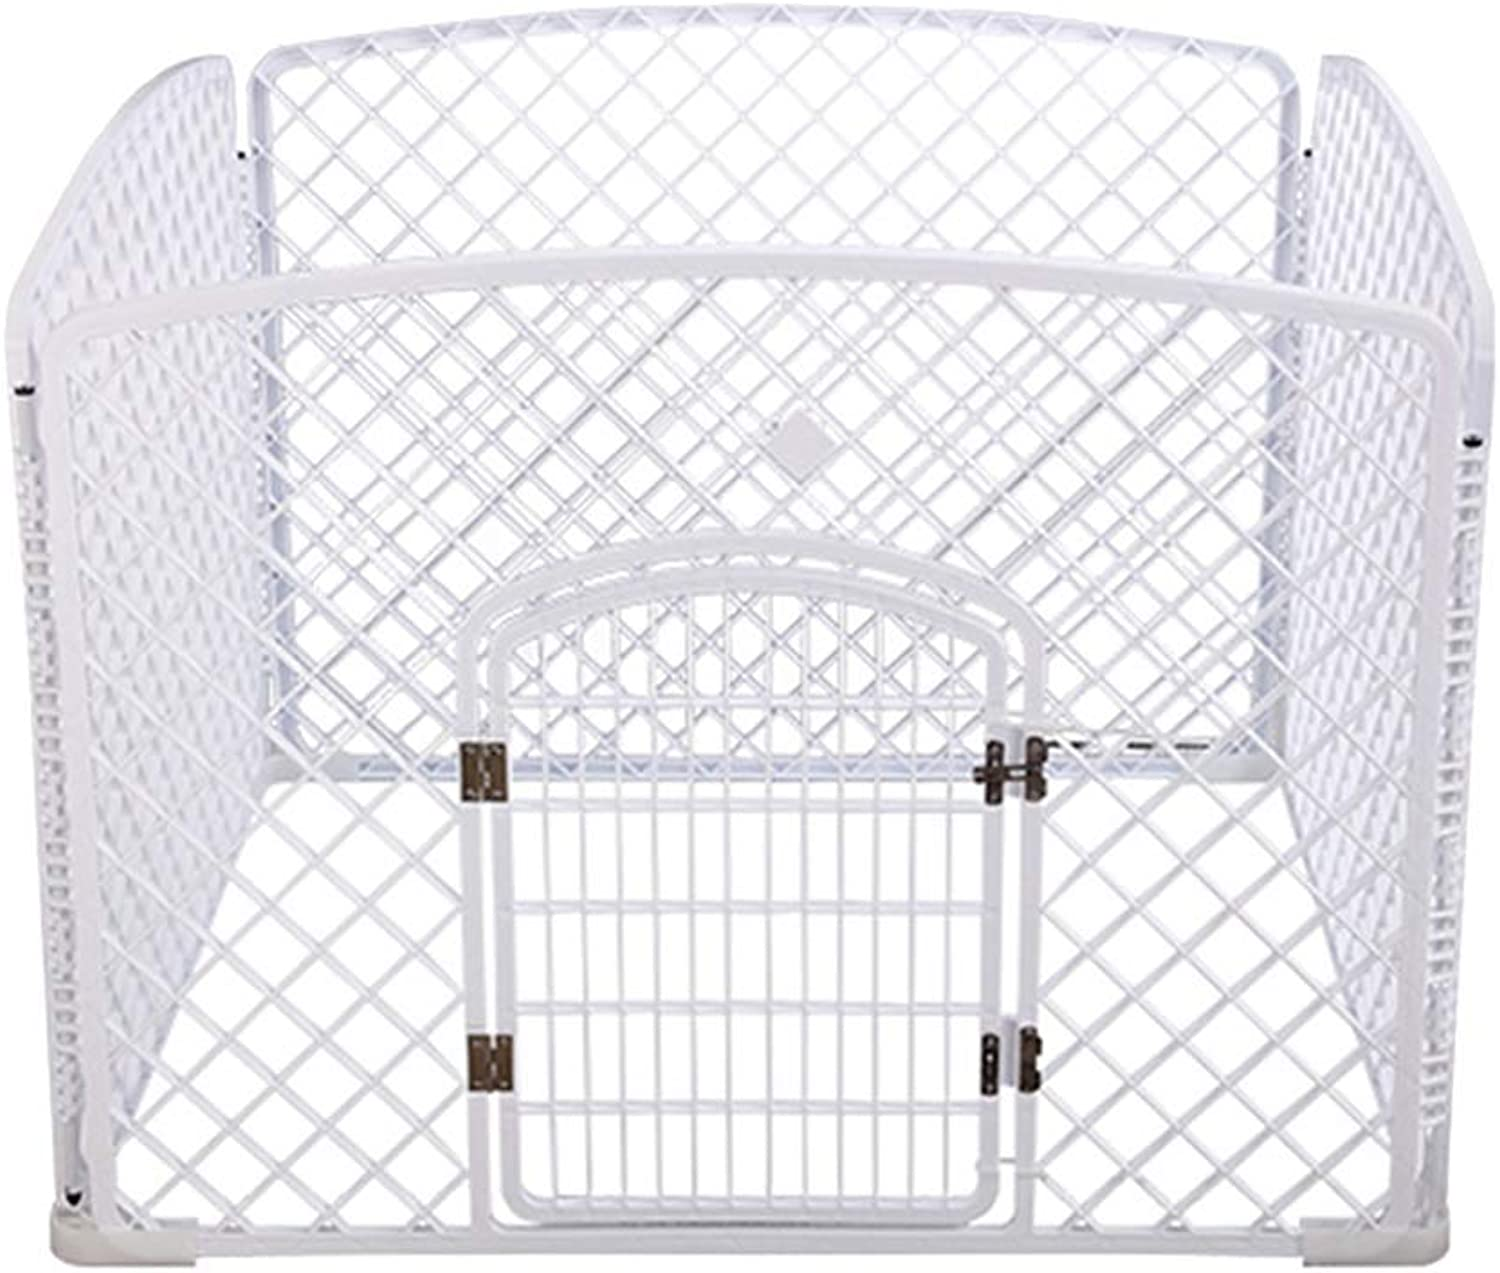 QNMM Dog Playpen, Pet Predable Folding Exercise Pen Dog Fence, 4Panel PP Resin Pet Cage Kennel for Puppy,White